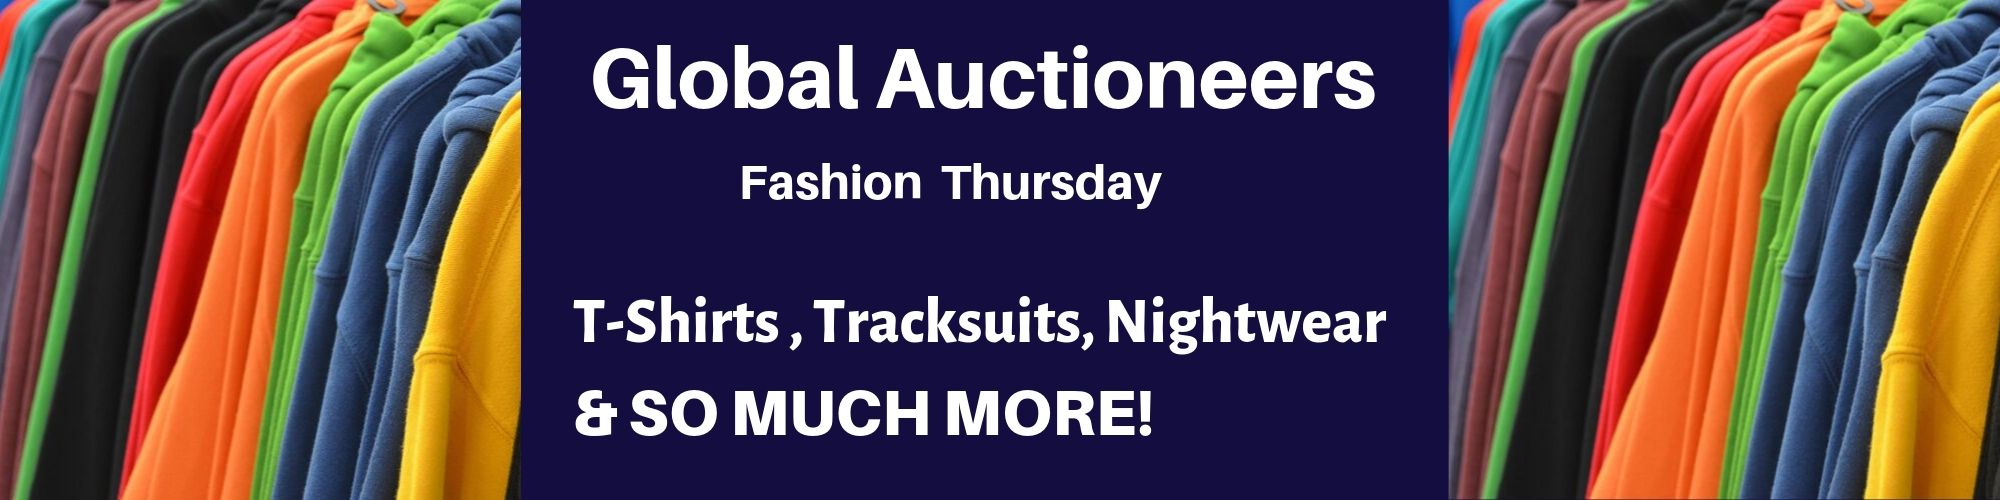 Trade lots of Fashion to be auctioned off to the HIGHEST bidder!